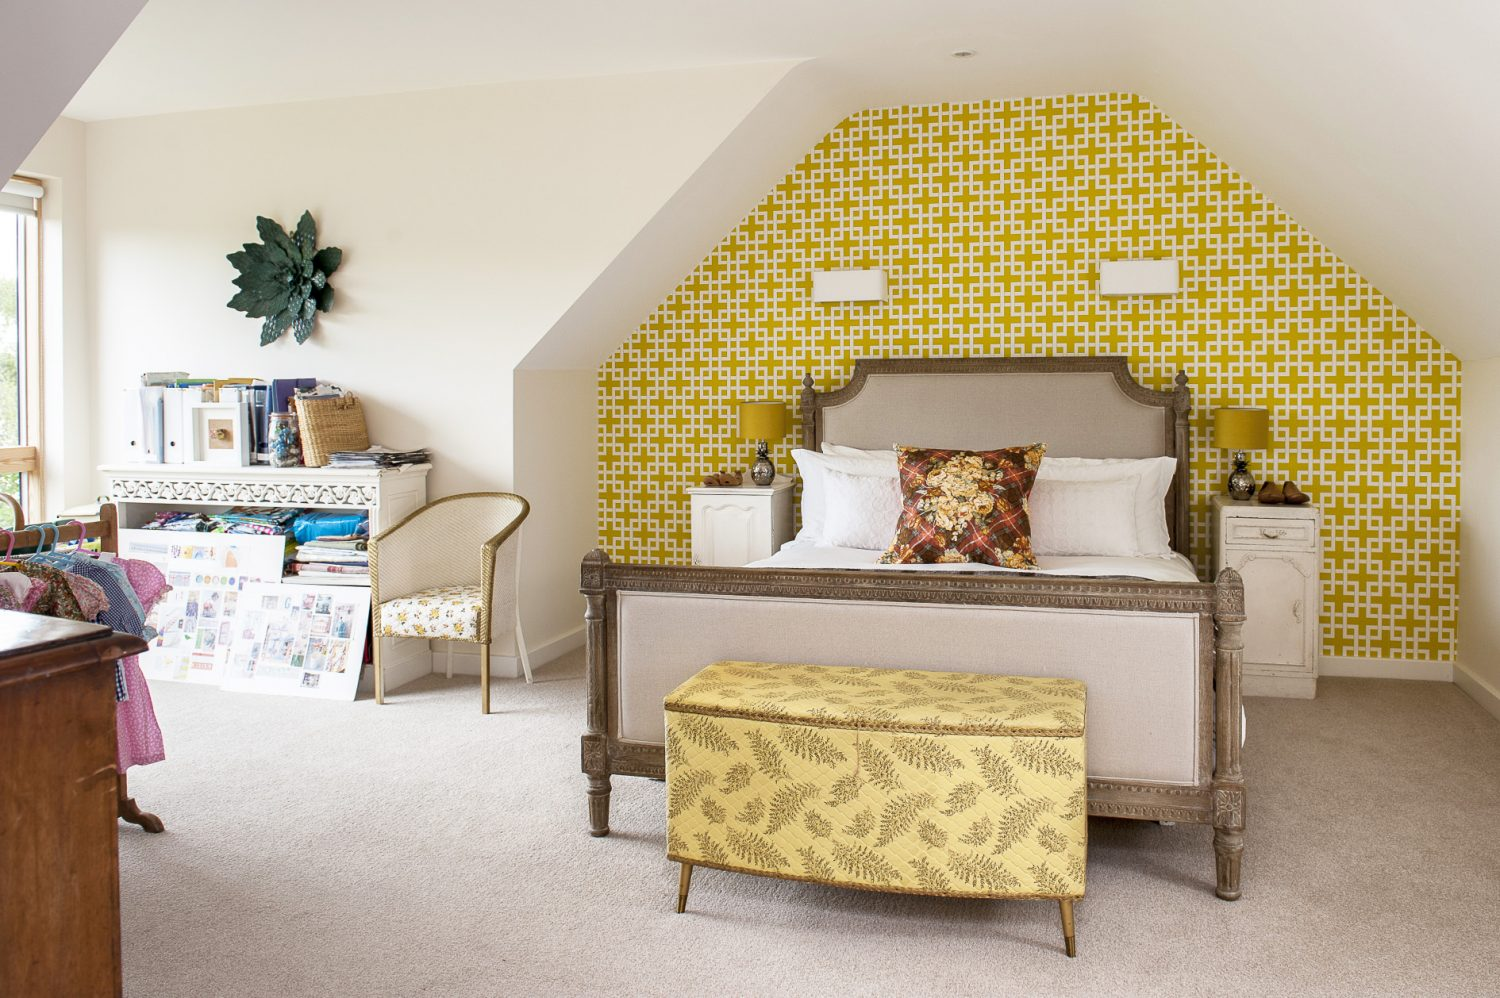 The guest room occupies a vaulted space at the top of the house in which Jenny has appropriated a place by the window to serve as her office. The wall over the Loaf bed is papered in Clarke & Clarke 'Lattice' next to which stands an unusual gilt Lloyd Loom chair